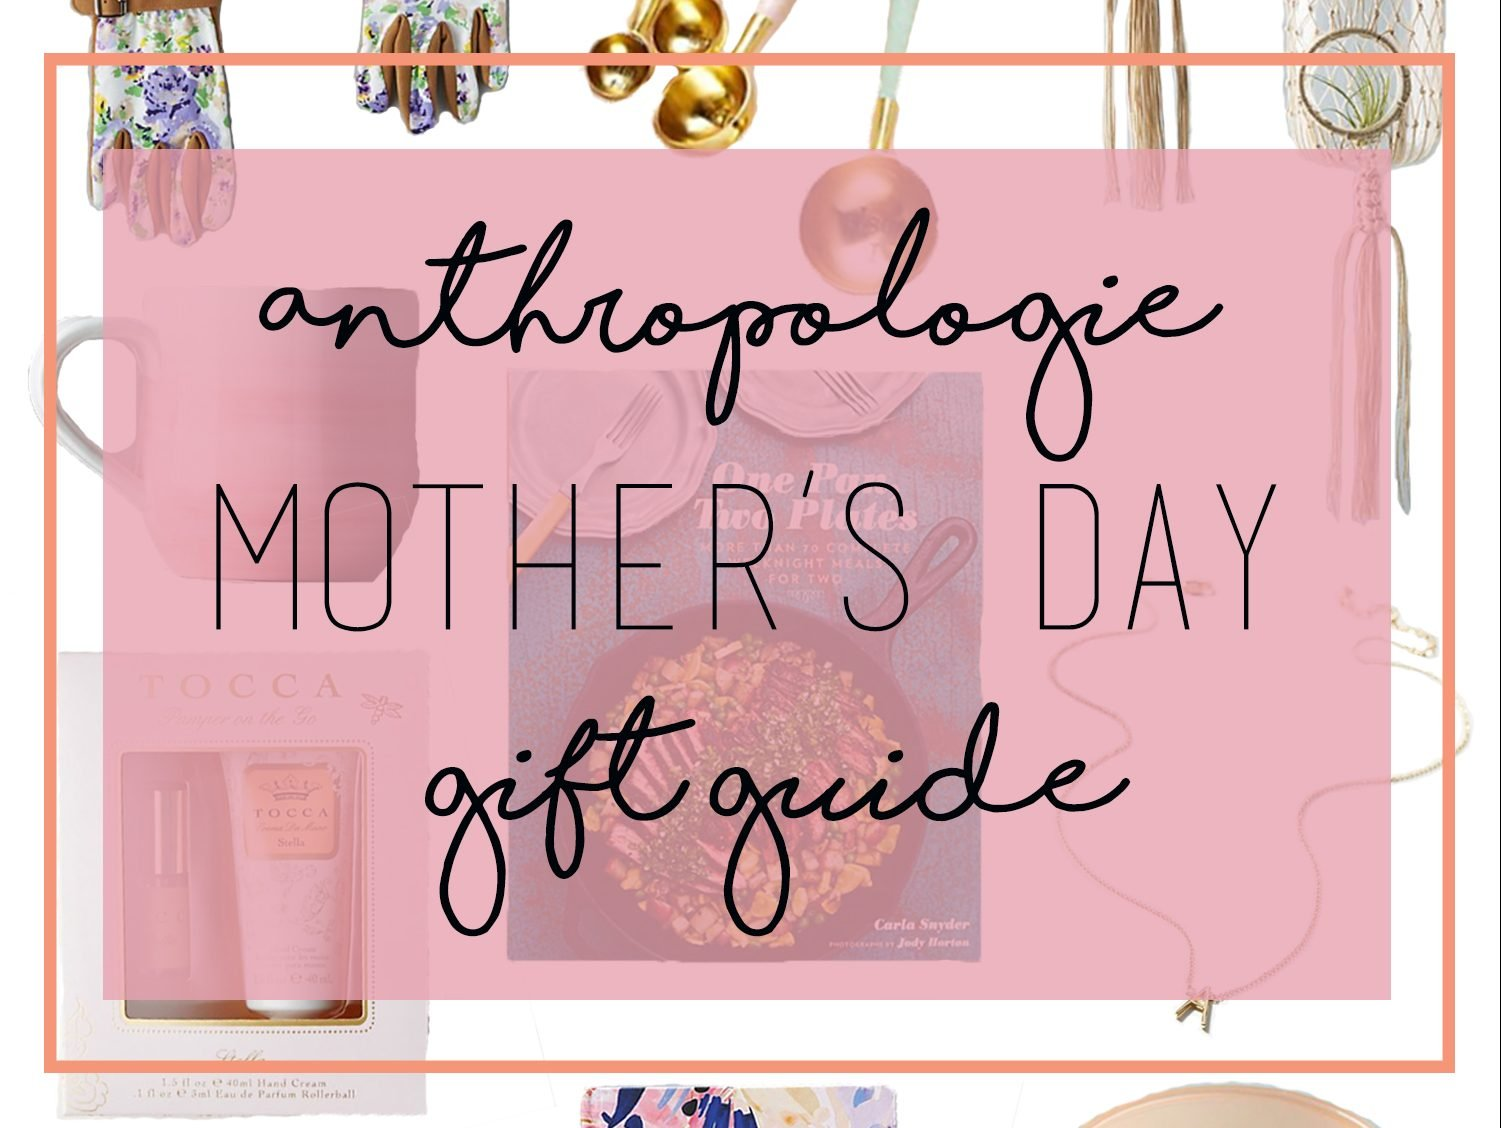 Anthropologie mothers day gift guide